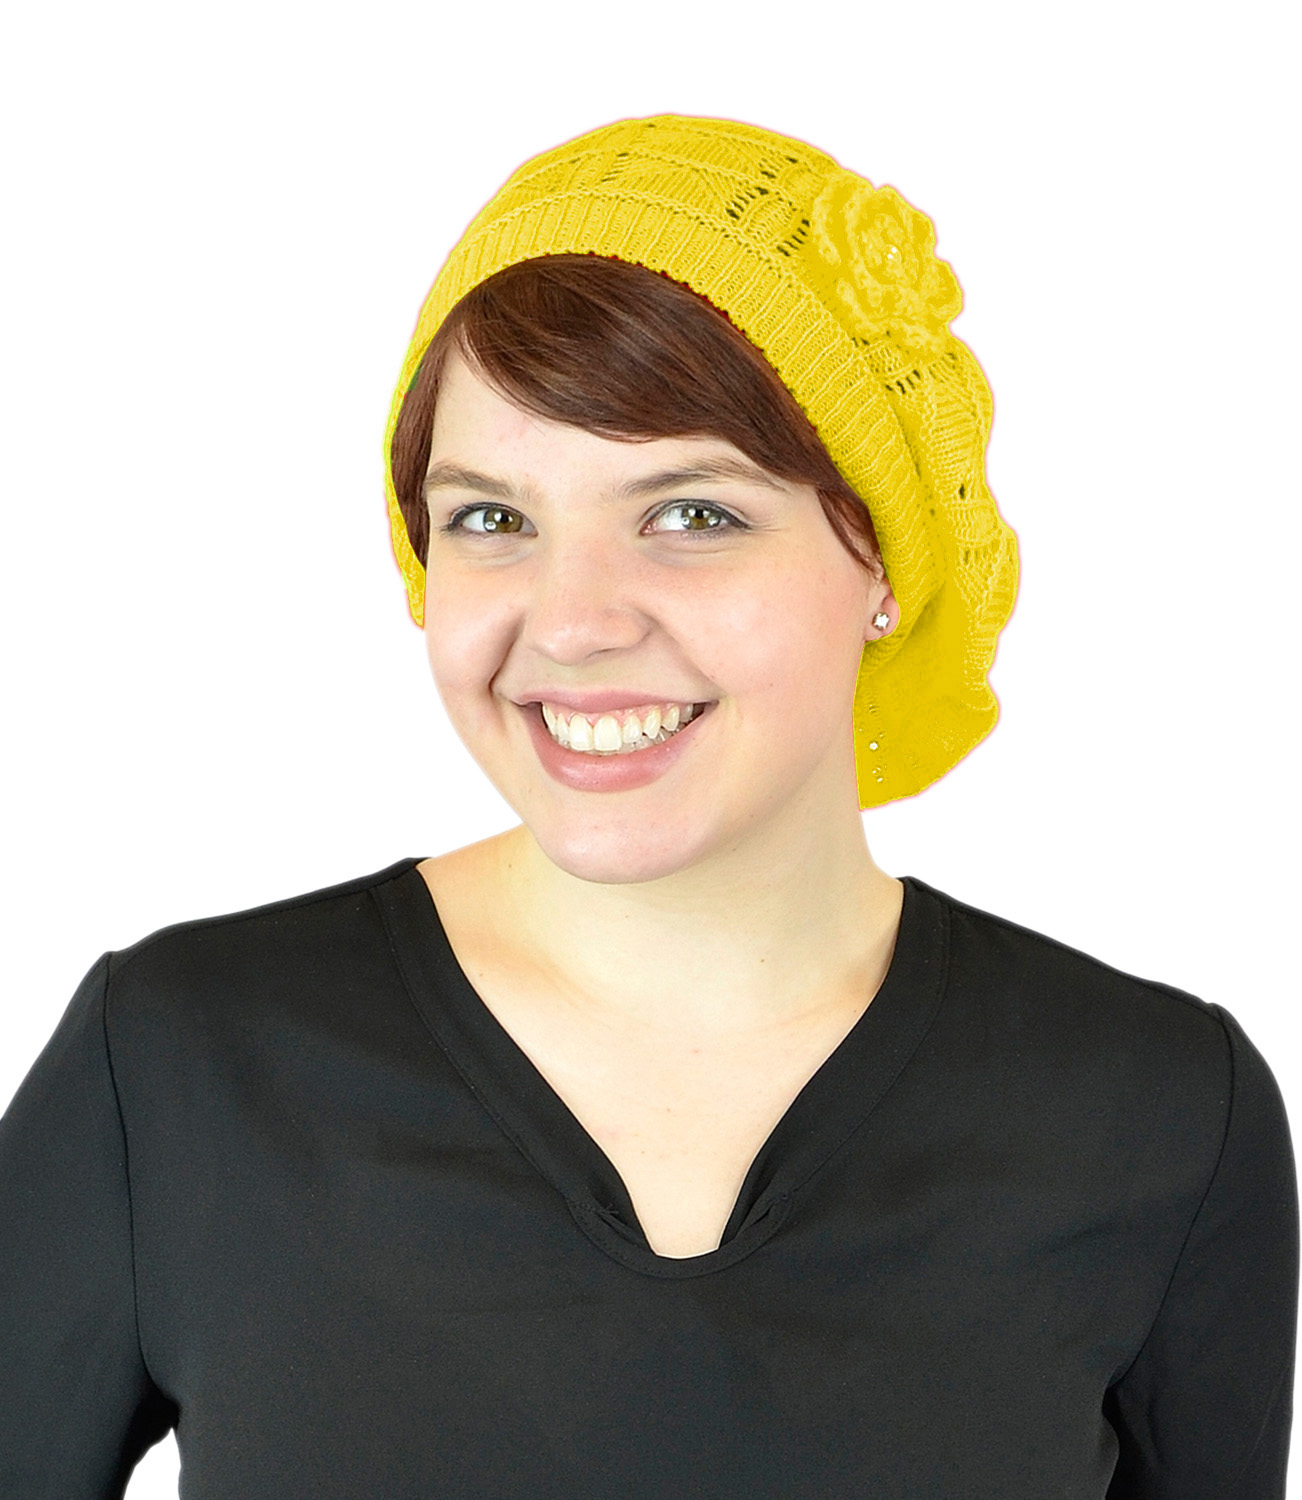 Belle Donne-Women's Mesh Crocheted Flower Accented Slouchy Beret Hat- Yellow